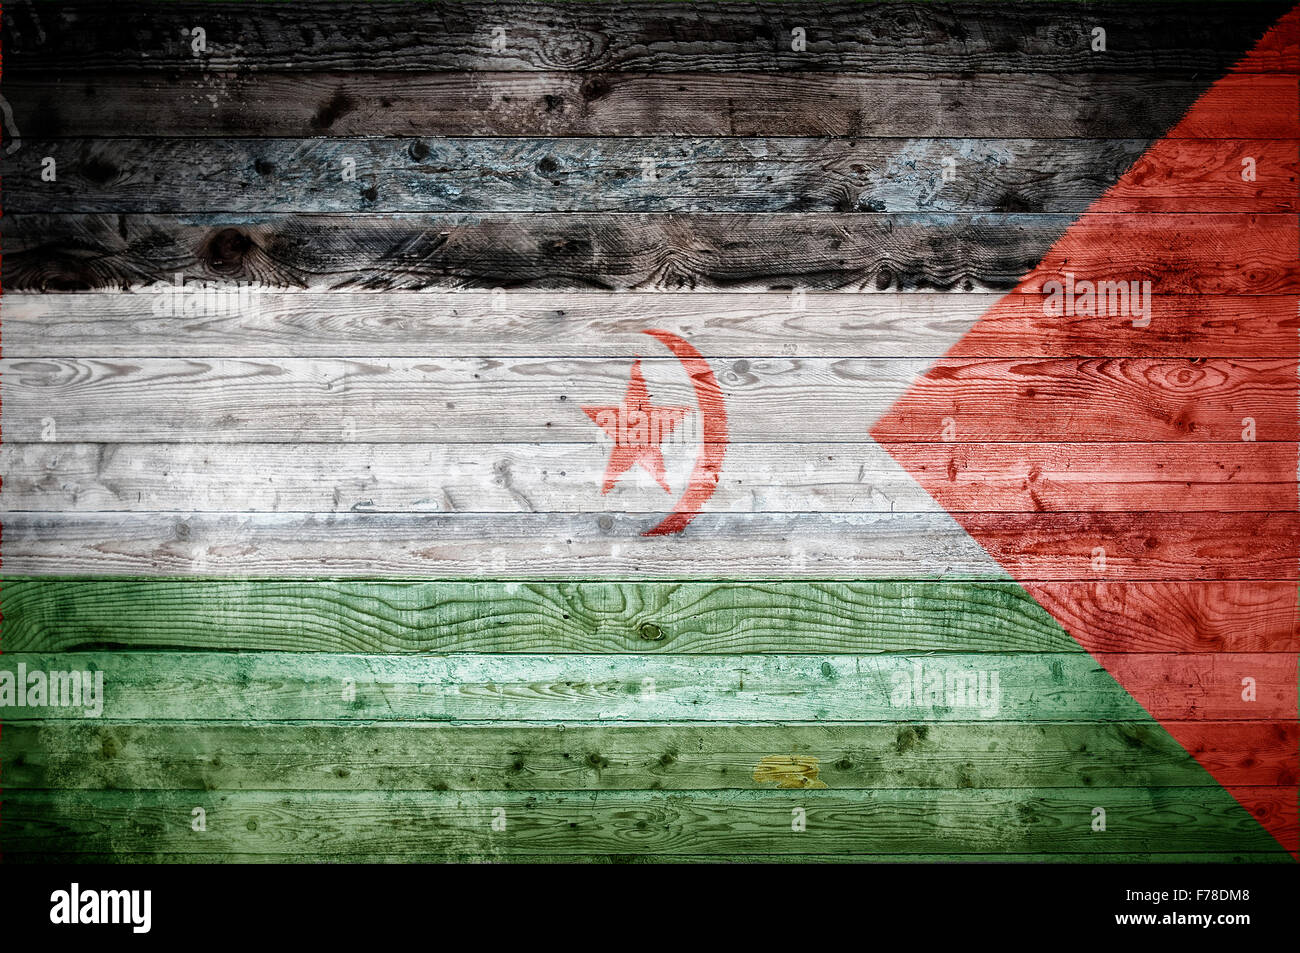 A vignetted background image of the flag of Western Sahara onto wooden boards of a wall or floor. - Stock Image